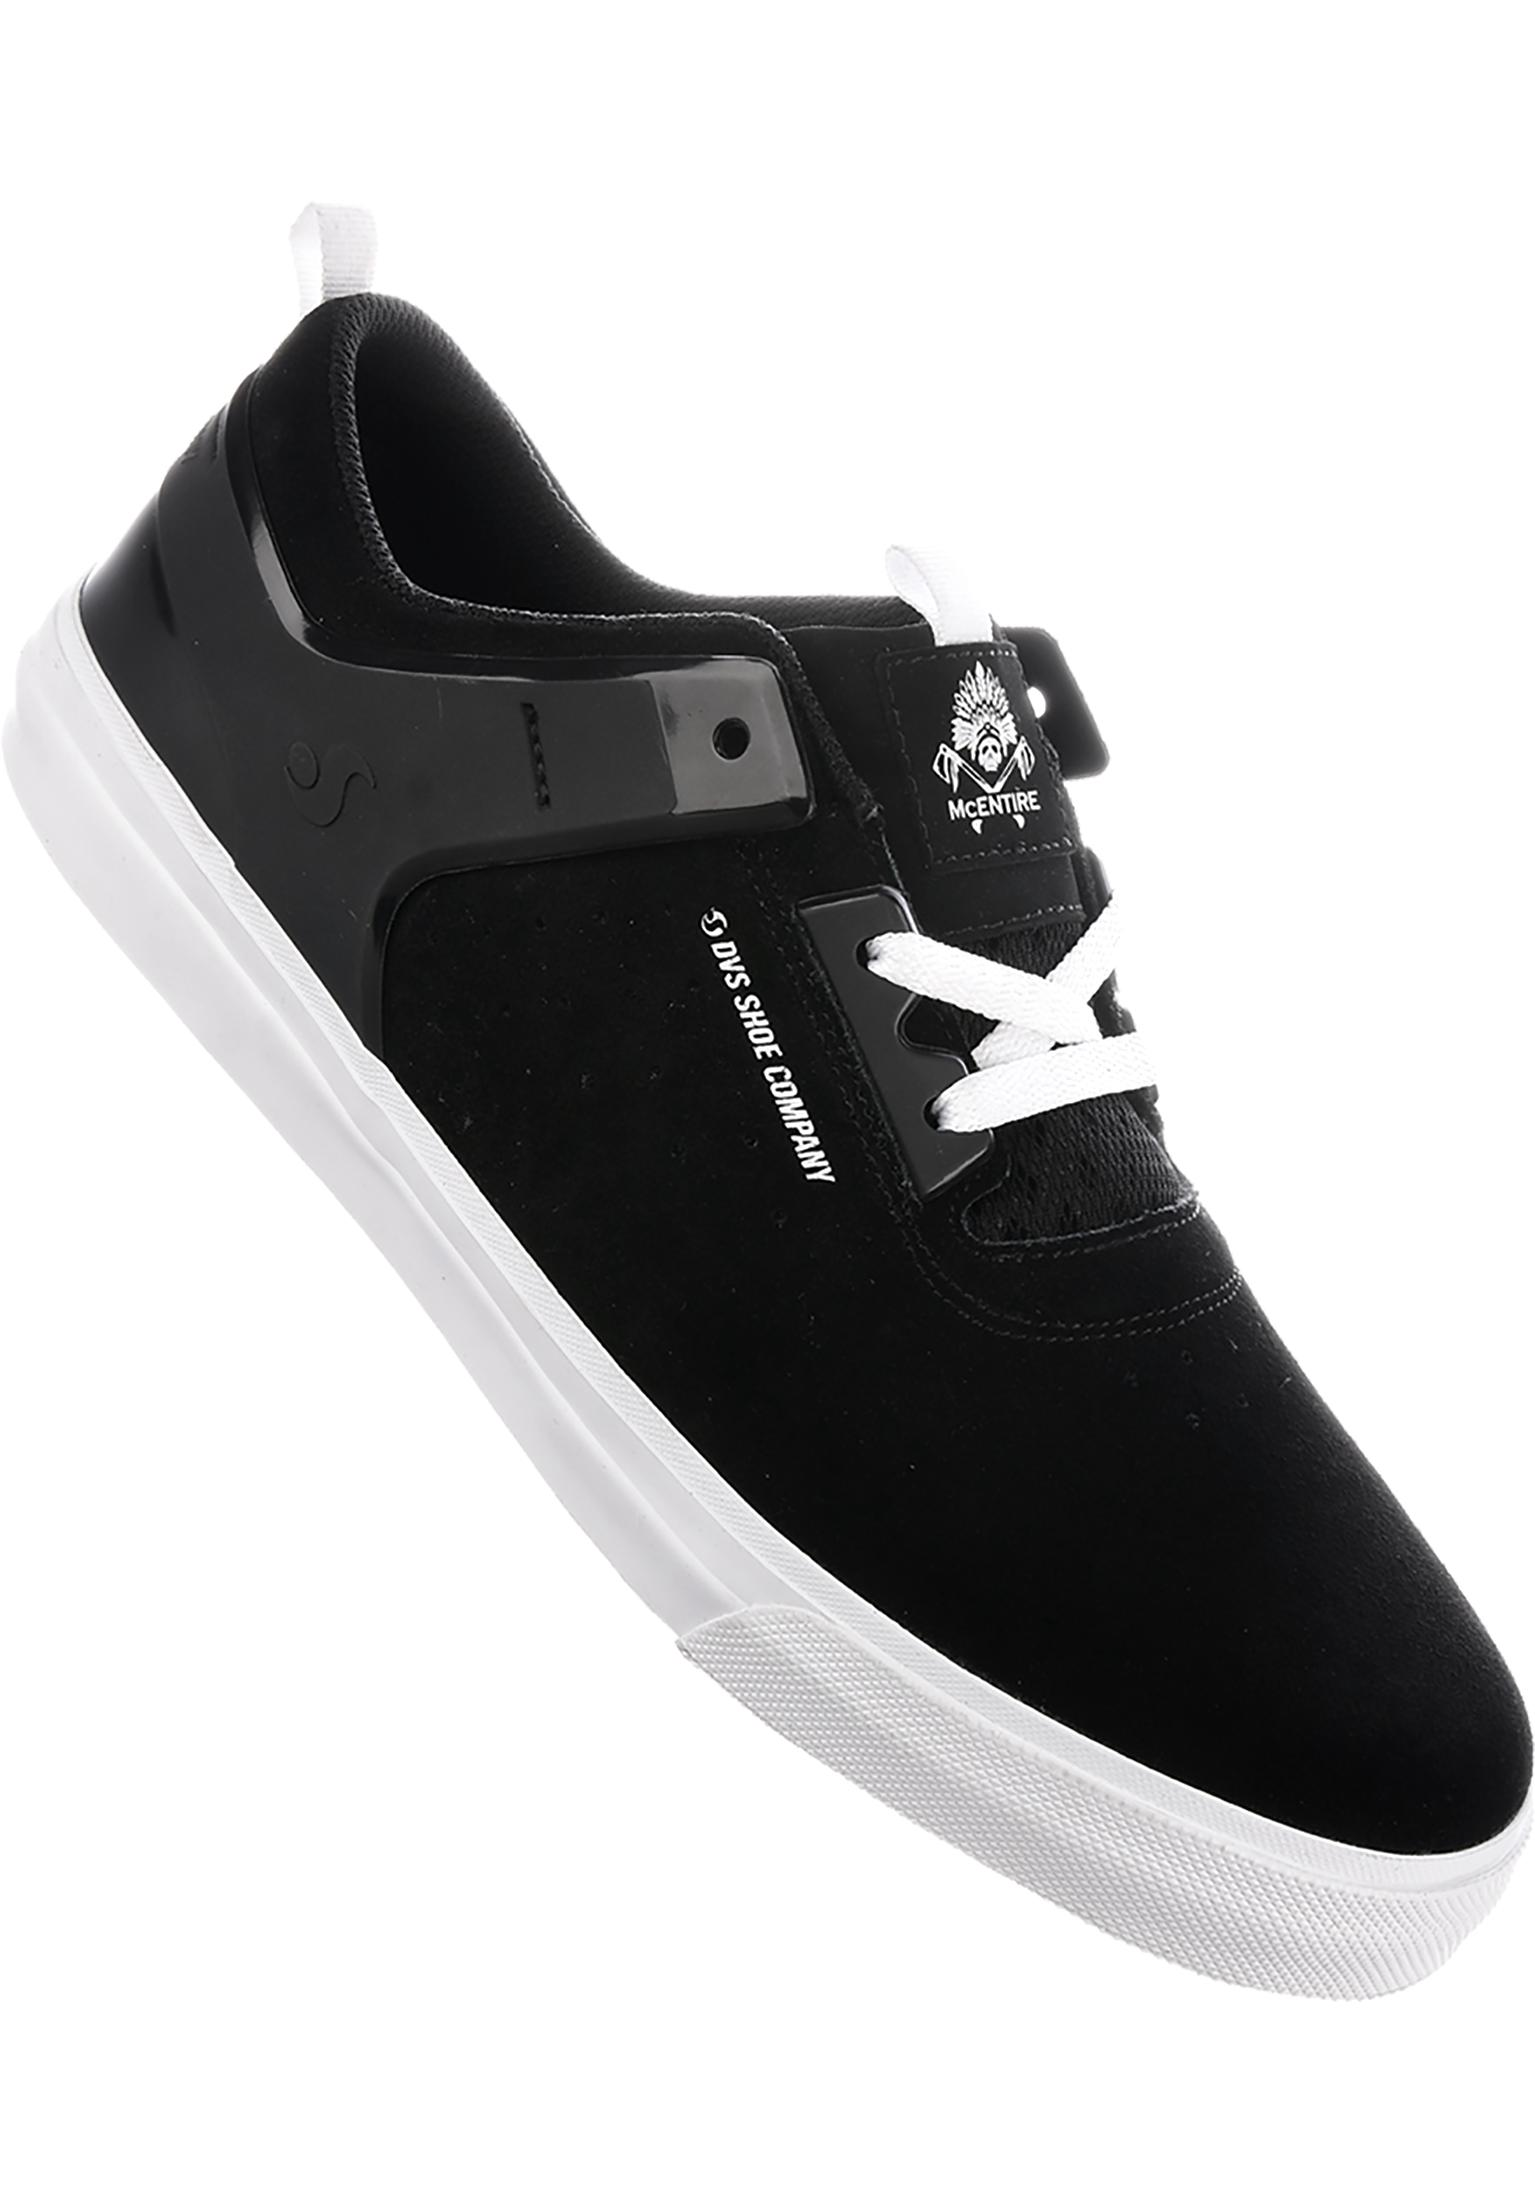 dvs alle schuhe cinch ct black white vorderansicht